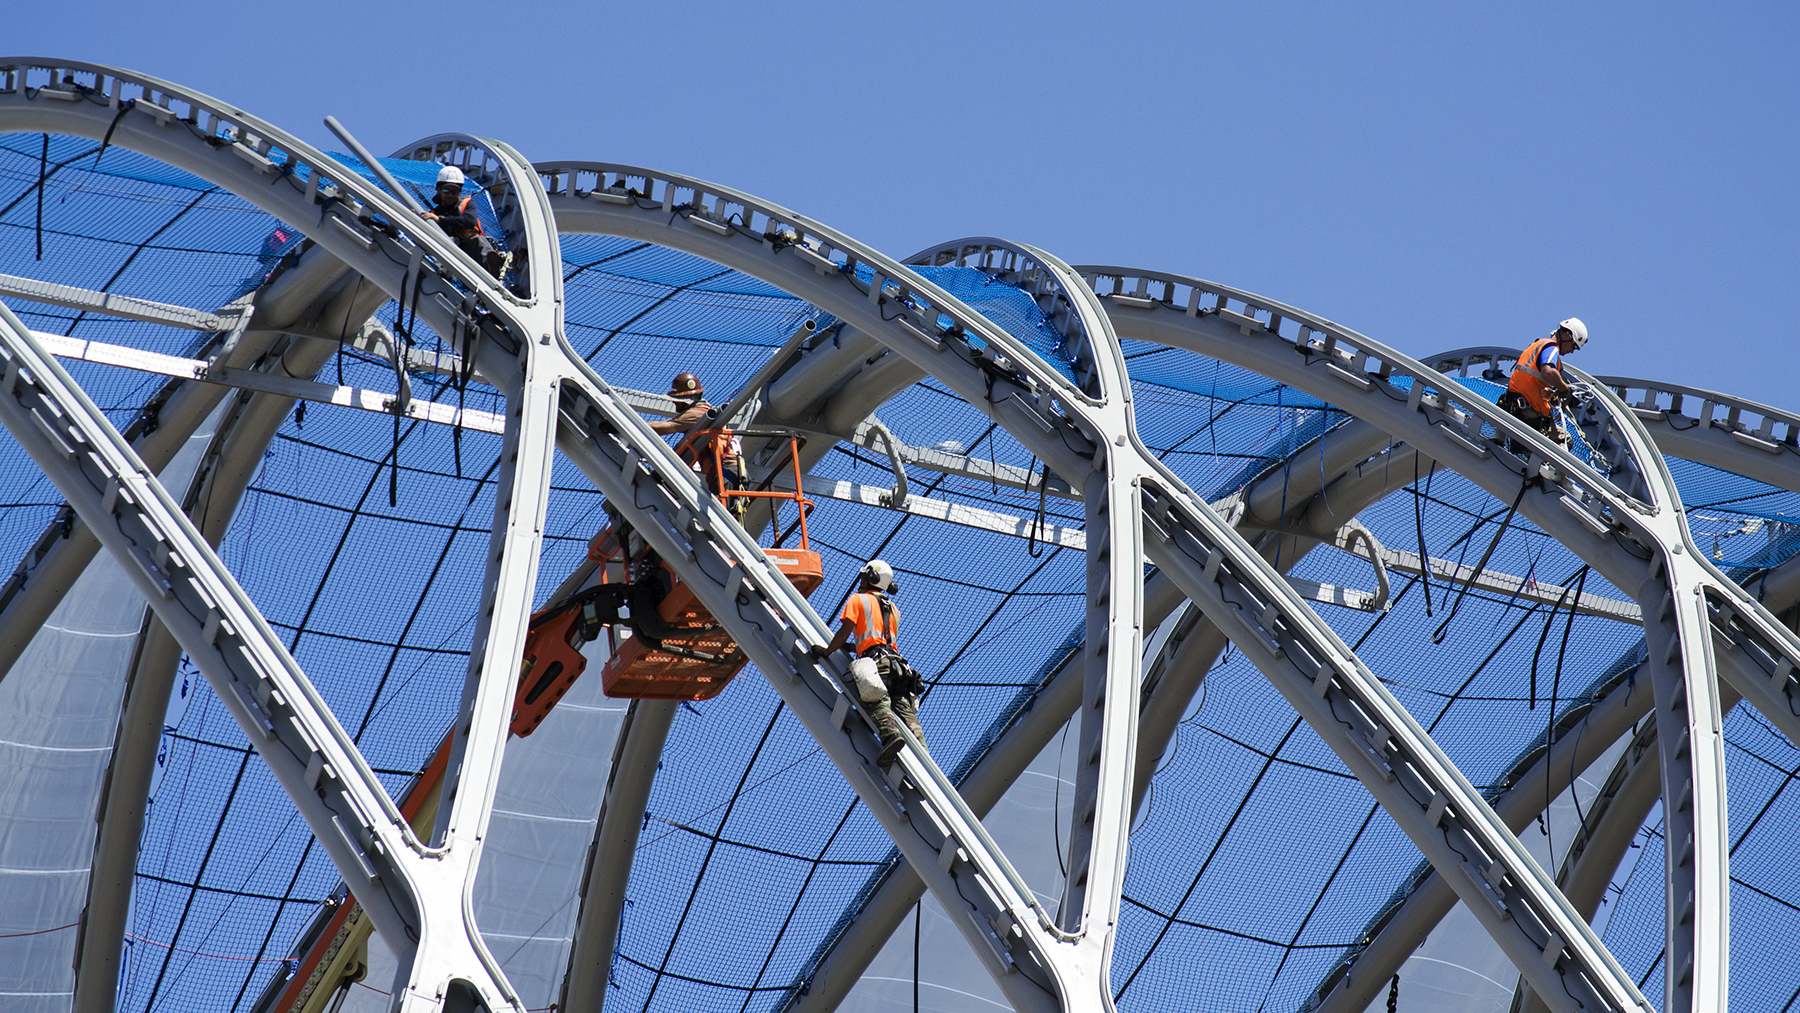 Construction crews work on the Anaheim ARTIC in May 2014.